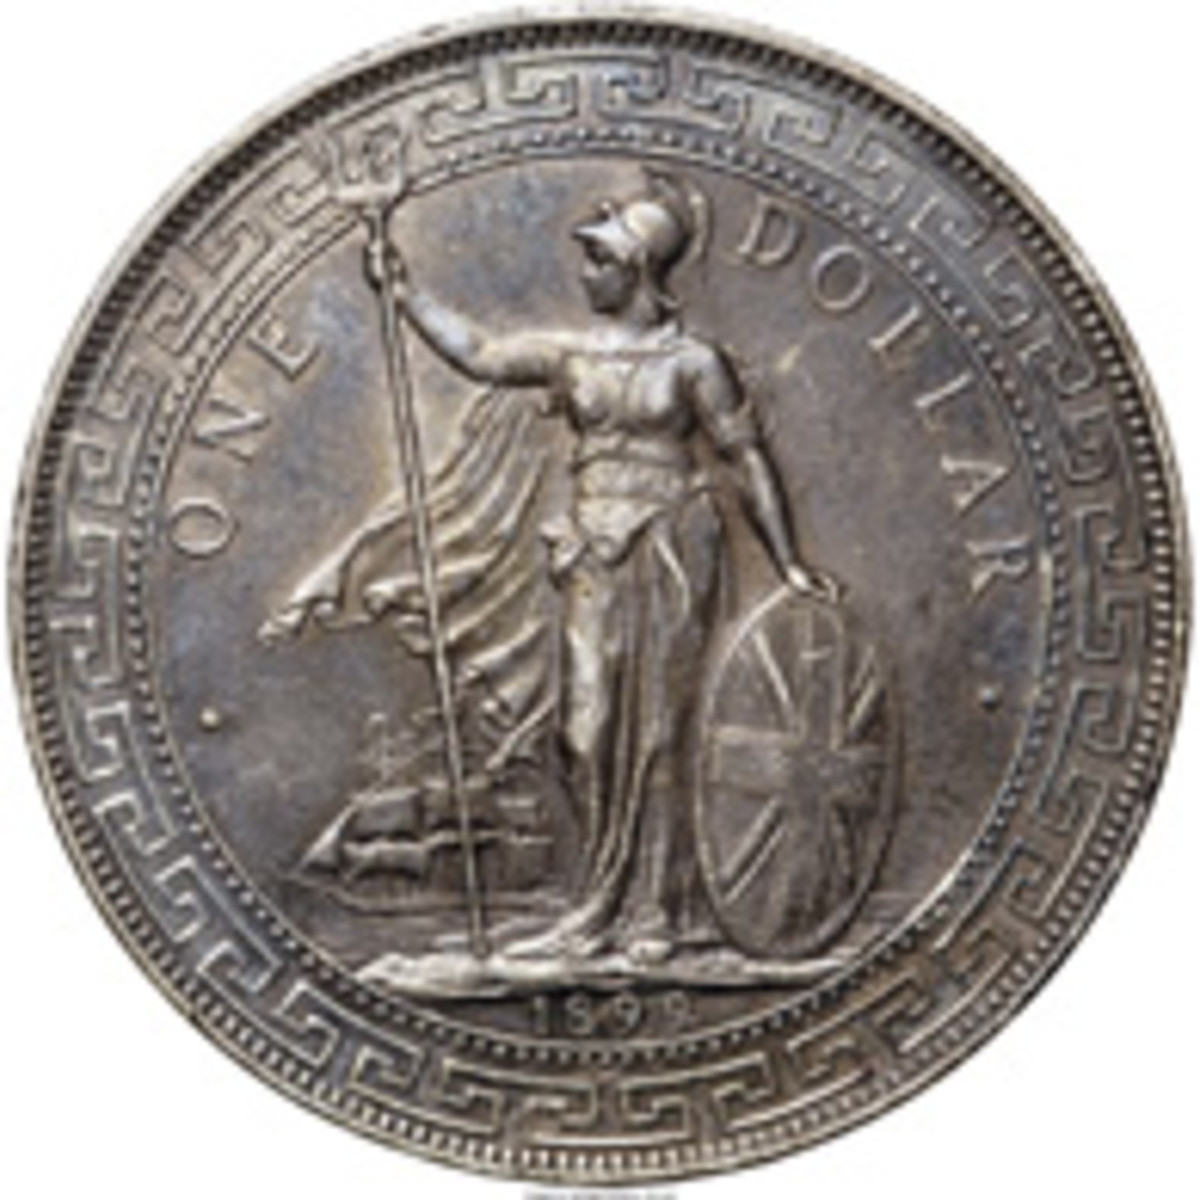 "Britannia Imperium – symbol of empire. Silver trade dollar of 1899, KM-Tn5. Britannia stands proud watchfully ruling the seas. The central prong of her trident carries the ""B"" mintmark of the Bombay Mint. (Images courtesy www.ha.com)"